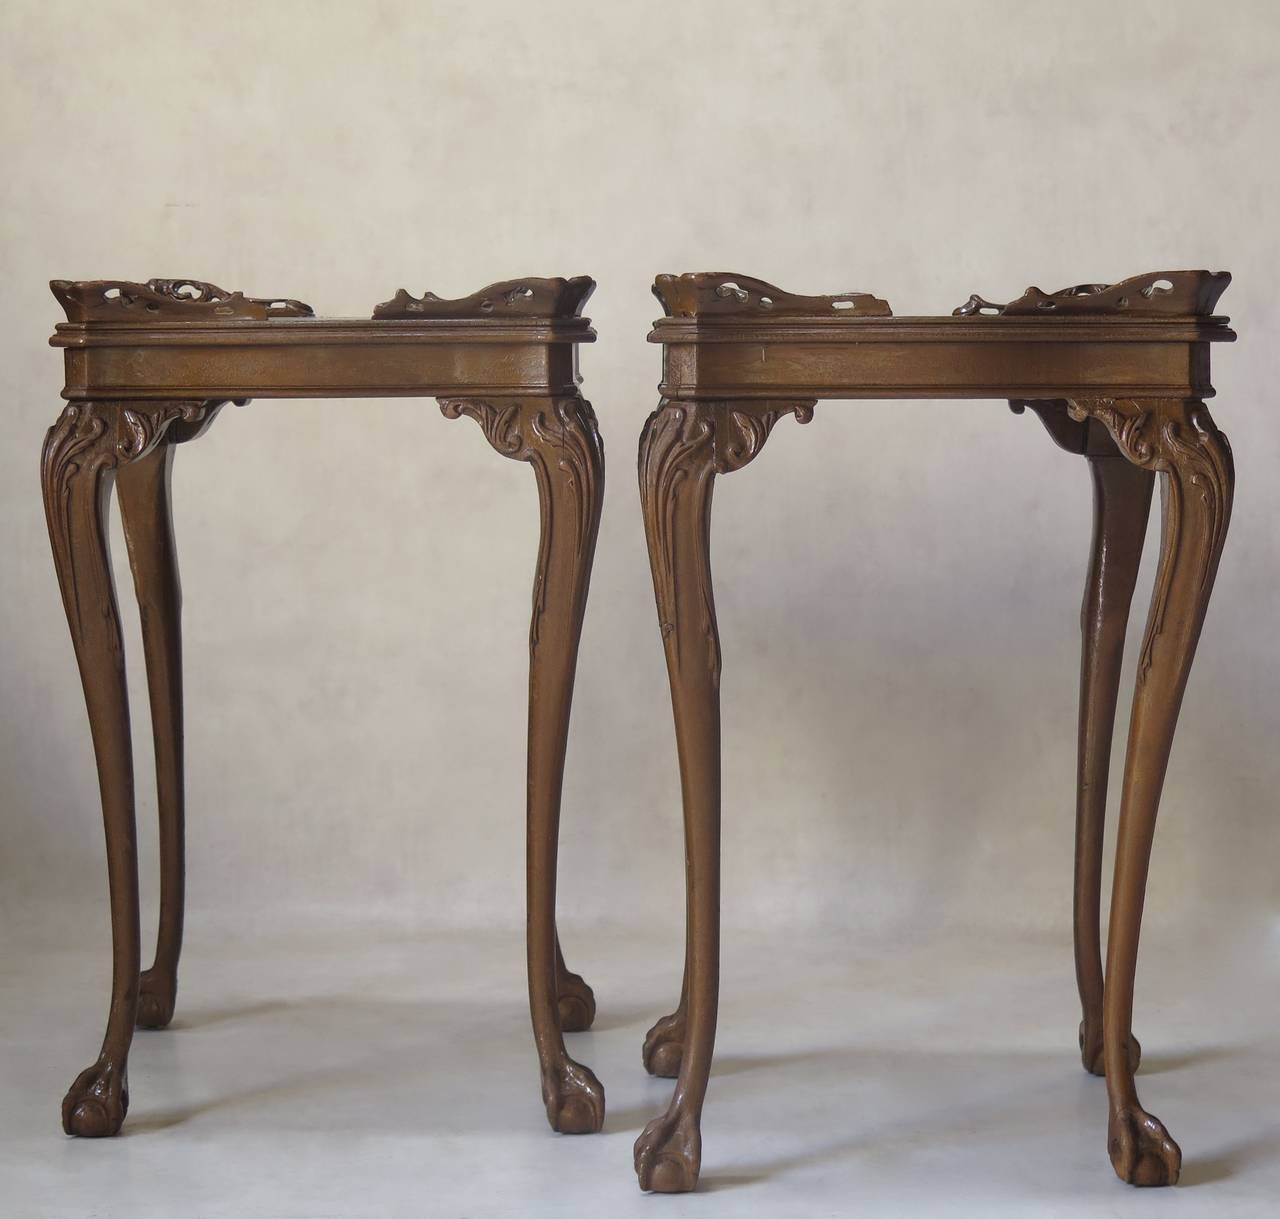 Superieur Elegant Pair Of Side Or Bedside Tables Raised On Slender Cabriole Legs,  Ending In Ball